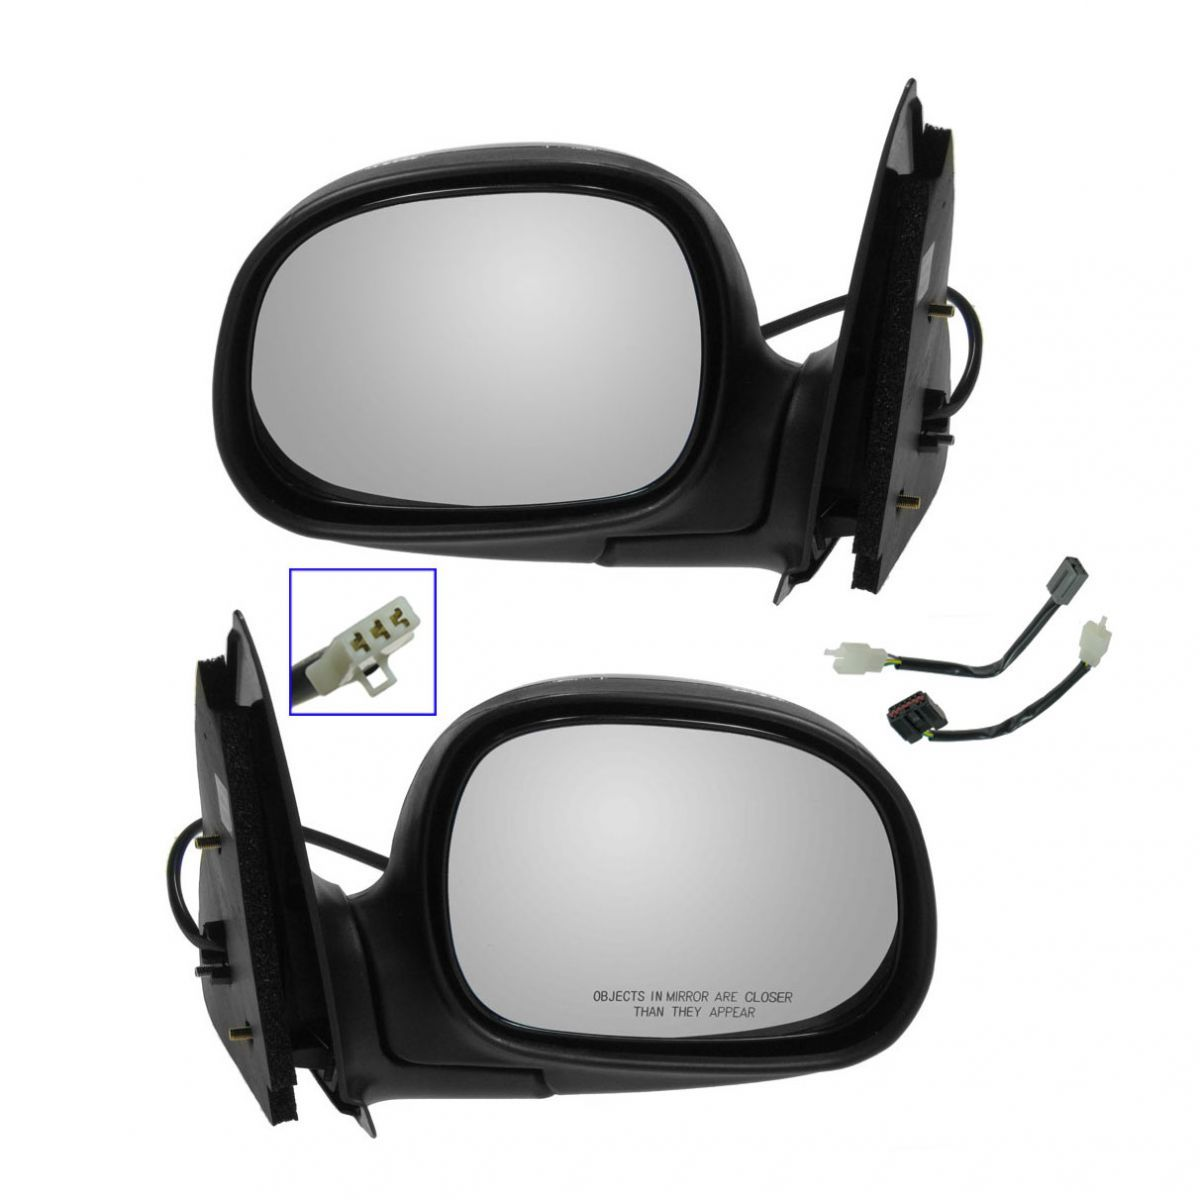 04-08 Forester Power Non-Heat Folding Rear View Mirror Left Right Side SET PAIR